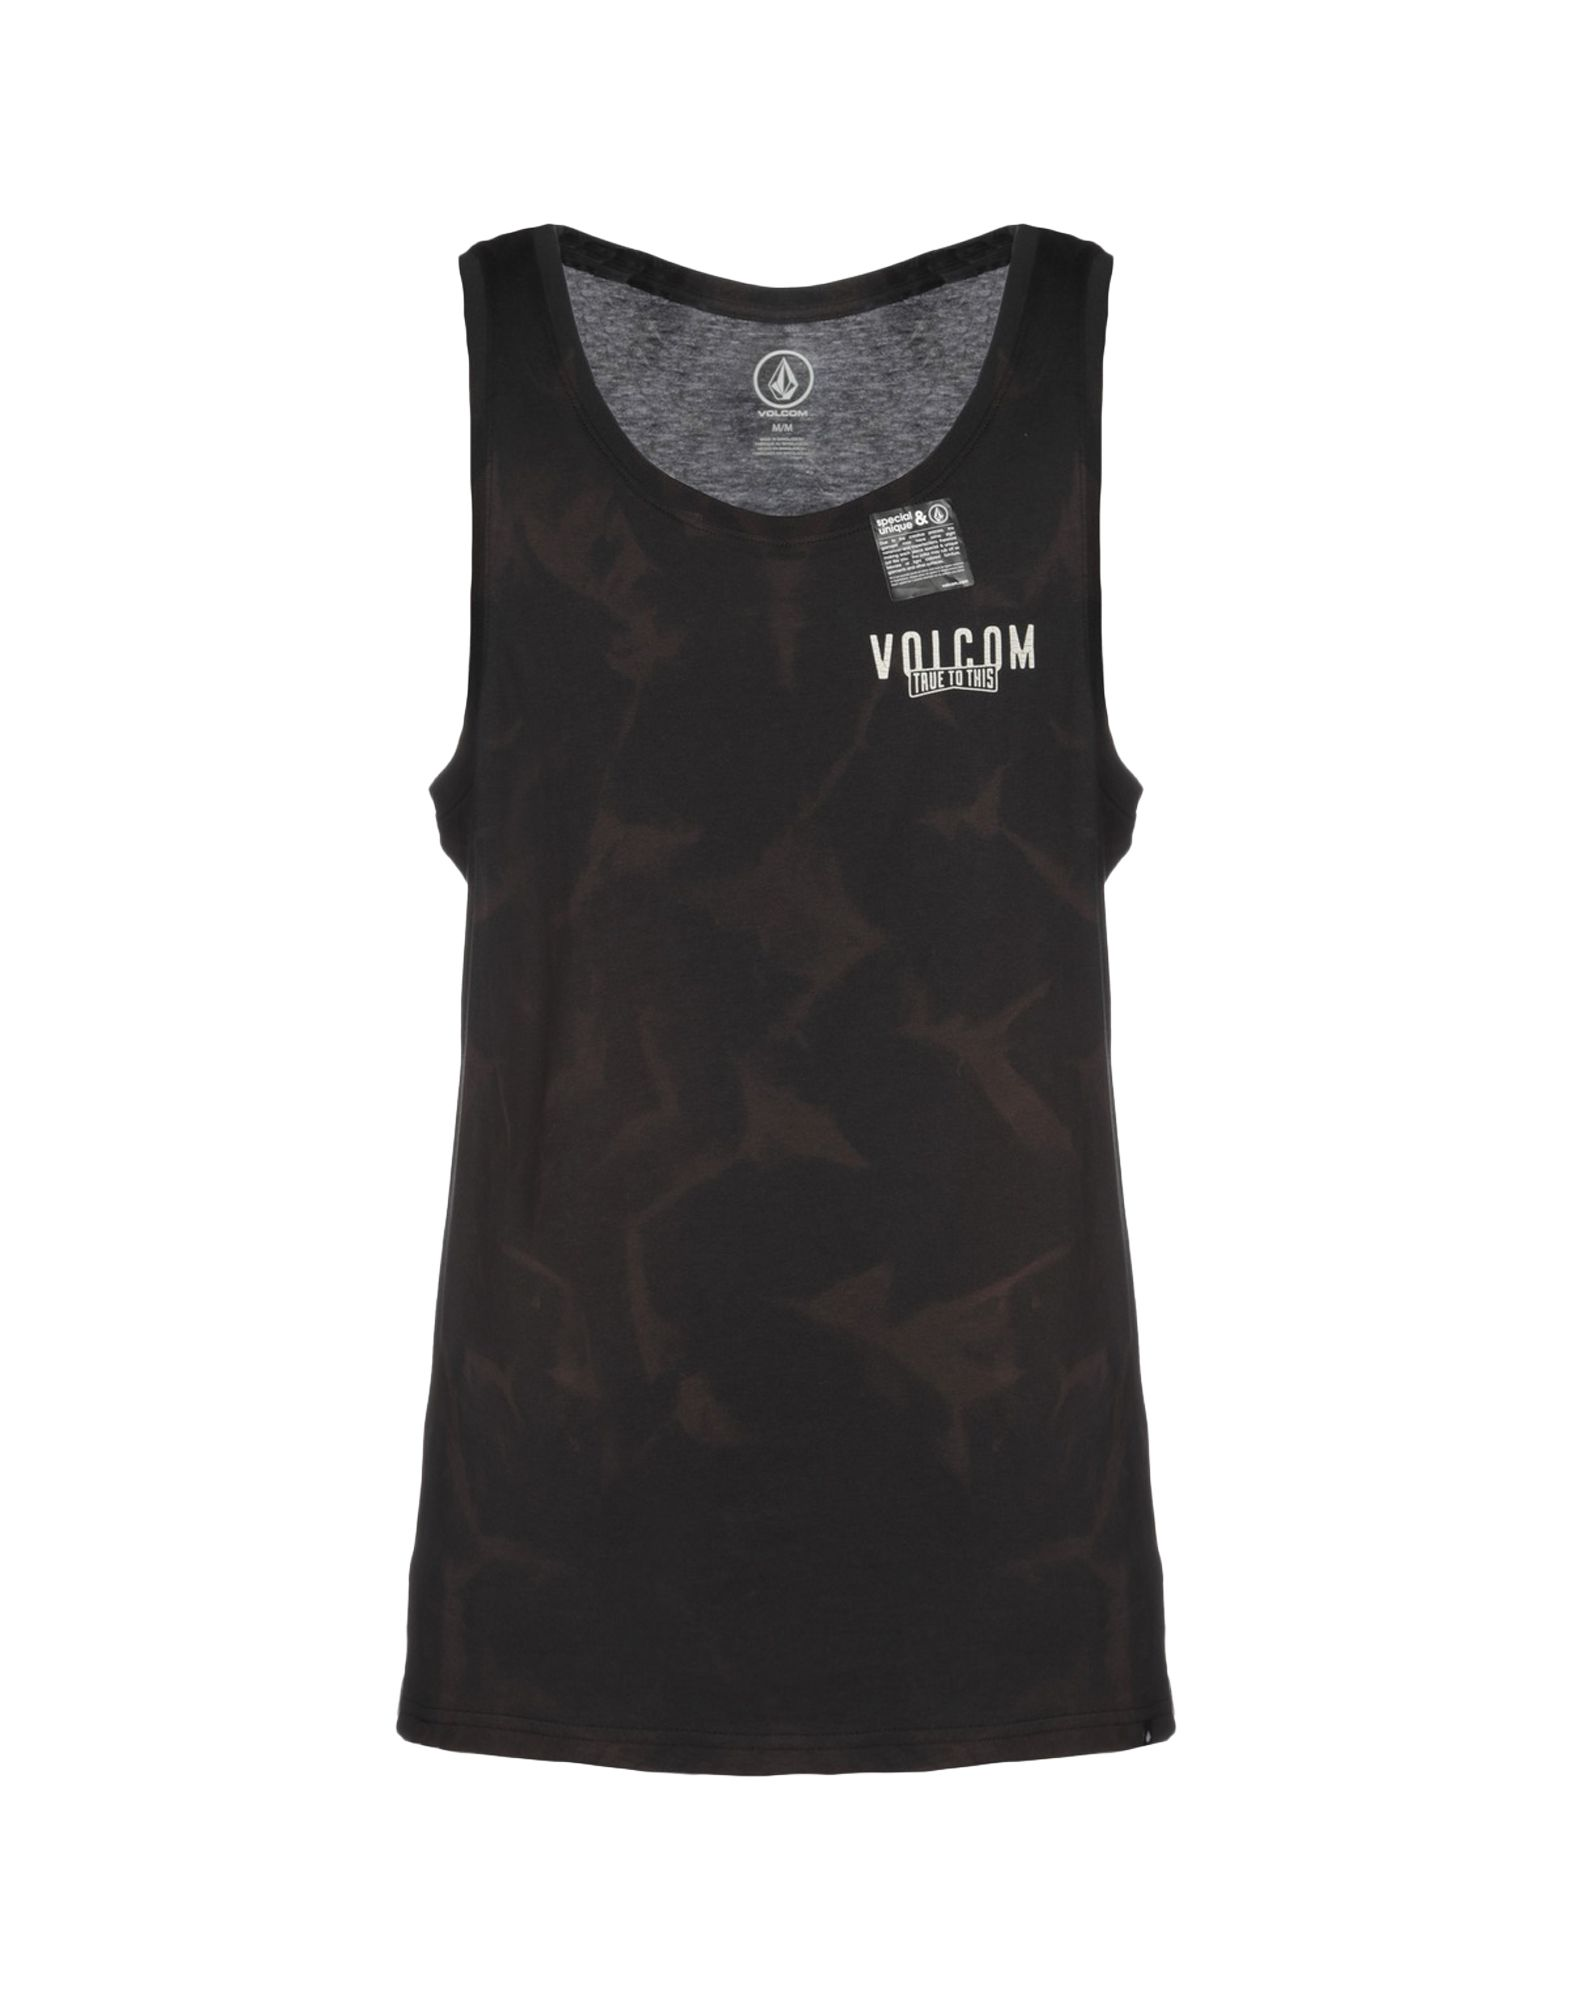 VOLCOM Майка volcom майка ж трик volcom touch my sol tank sea navy s